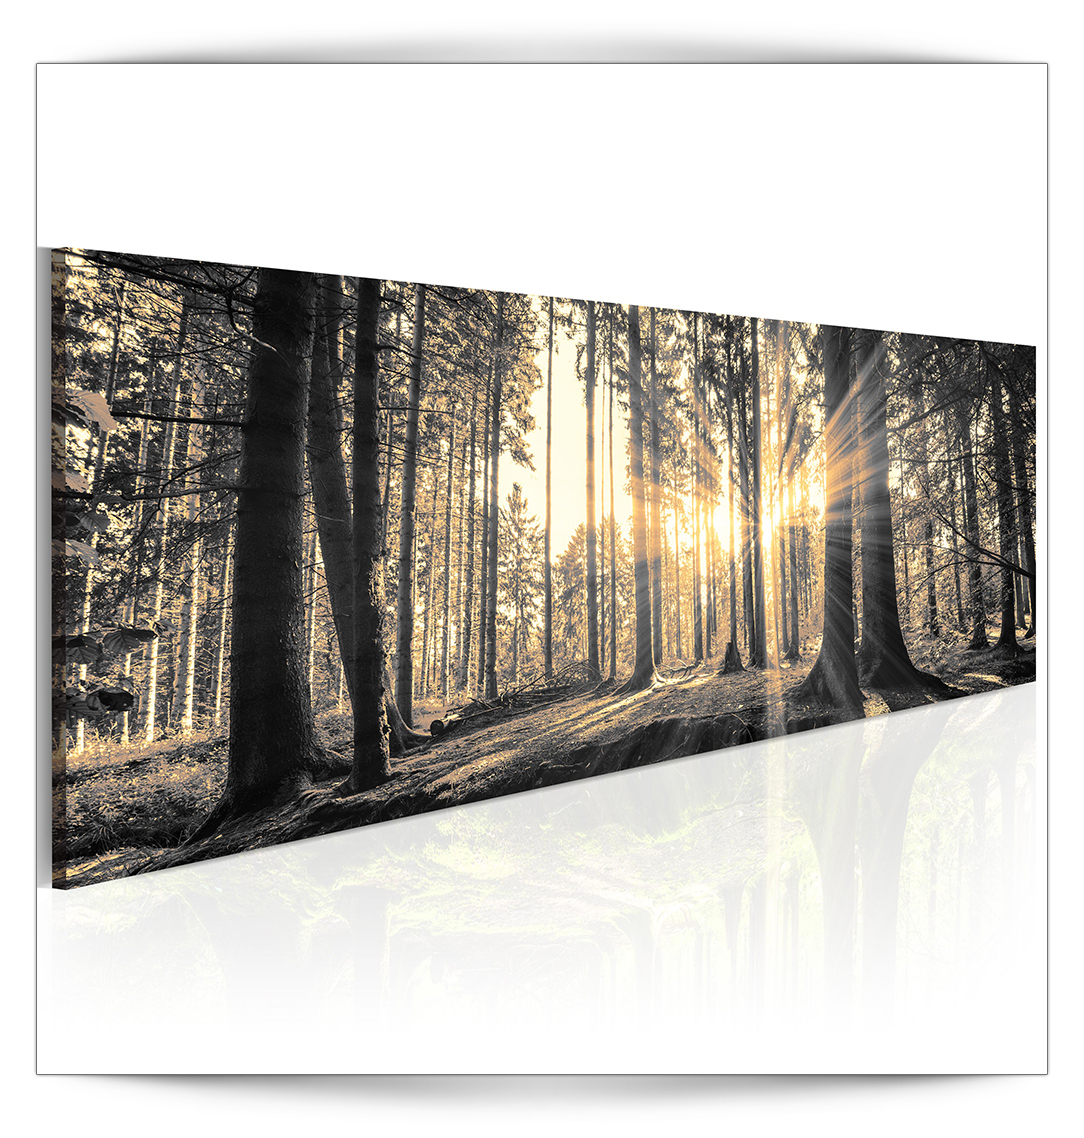 bilder leinwand wandbilder kunstdruck gro e auswahl wald strand natur dkb0005 ebay. Black Bedroom Furniture Sets. Home Design Ideas